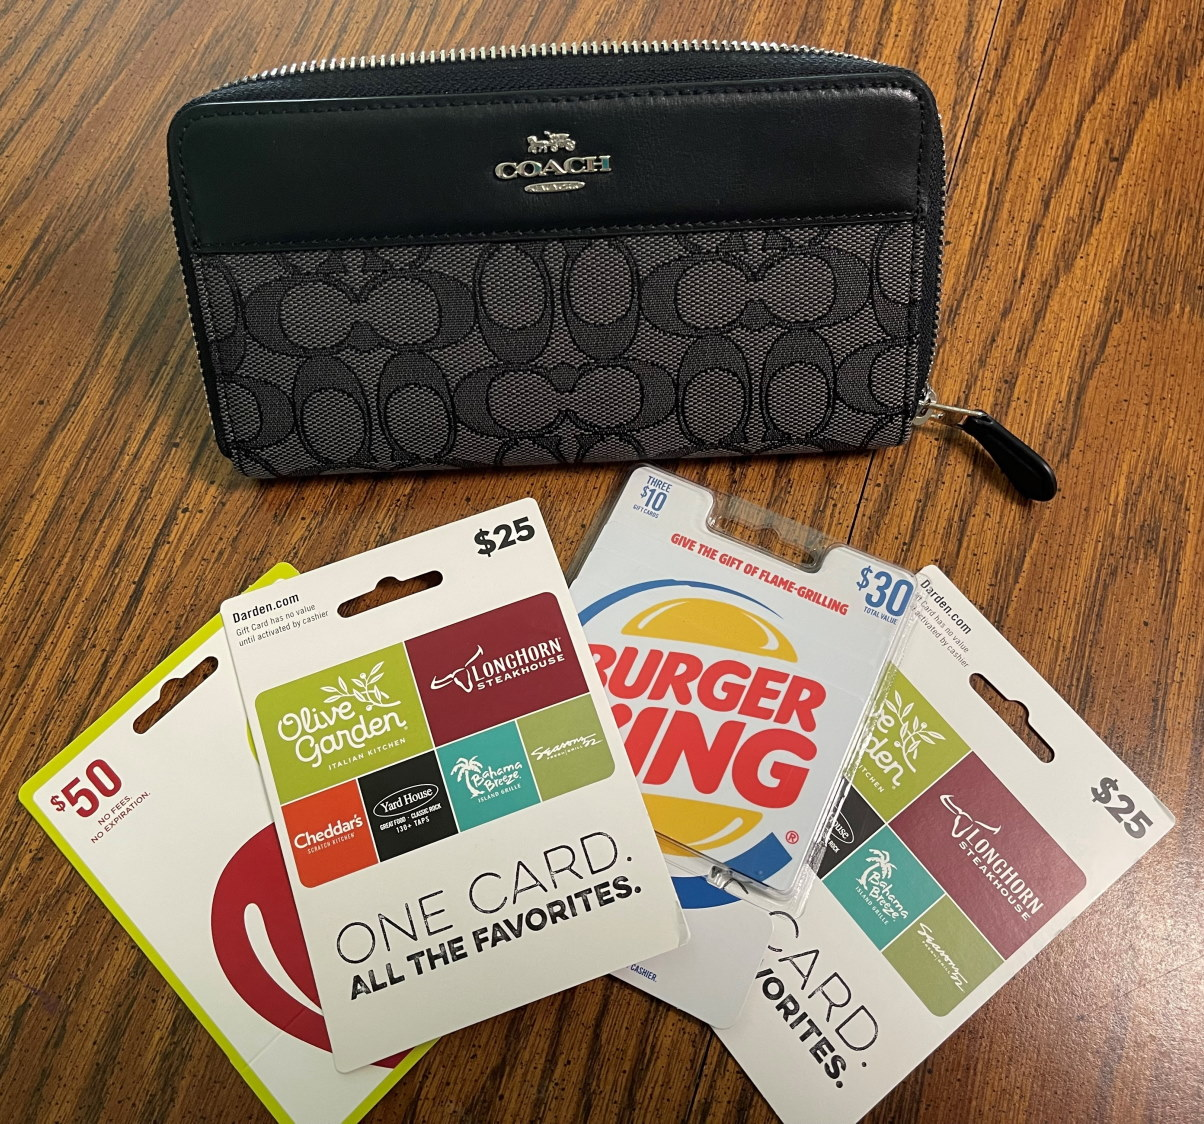 Tip Board Raffle – Coach Wallet PLUS $130 In Restaurant Gift Cards